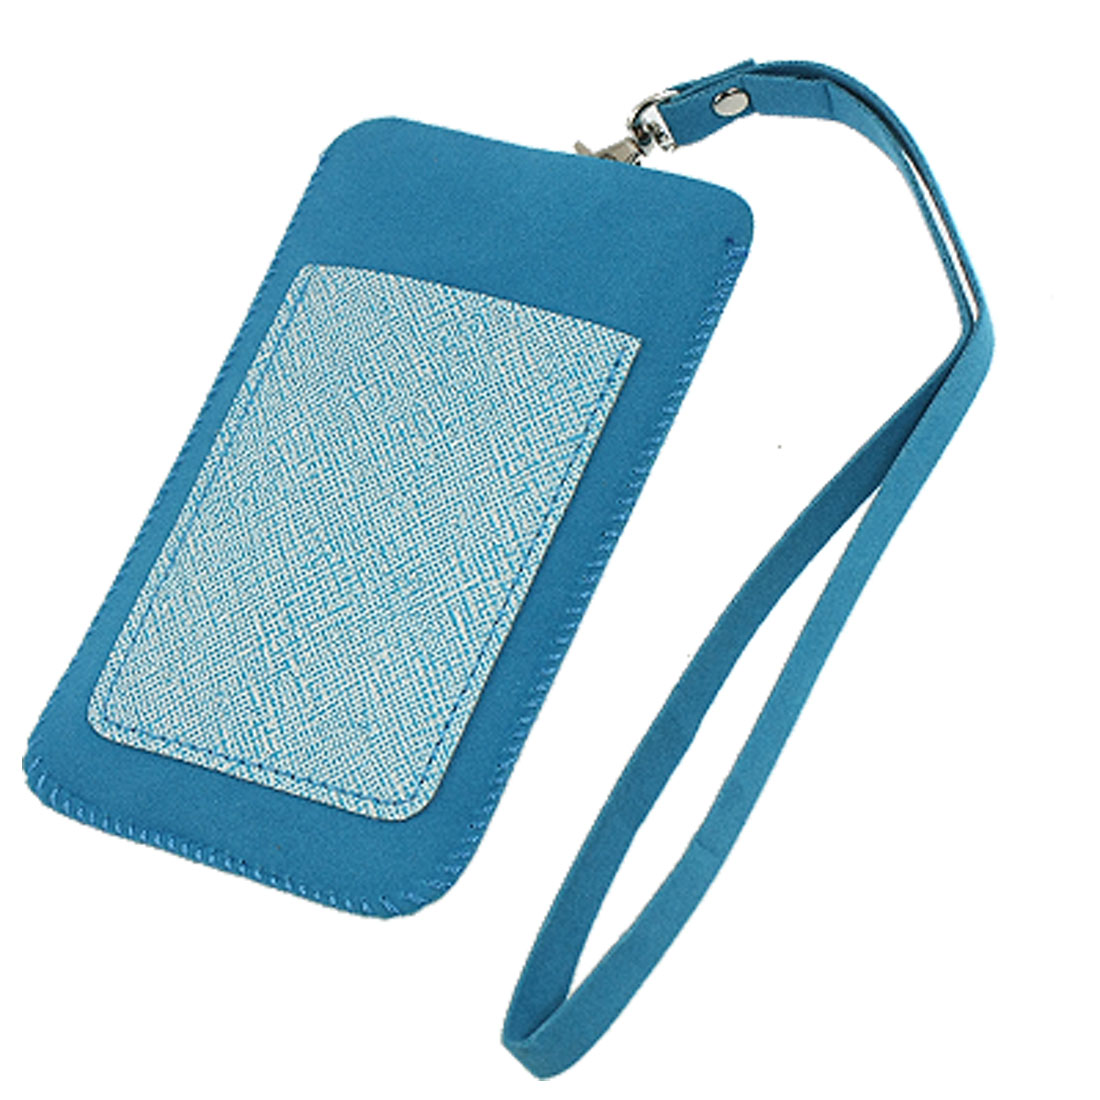 Phone MP4 PVC Faux Leather Stitched Hem Holder Cyan Blue Wrist Pouch